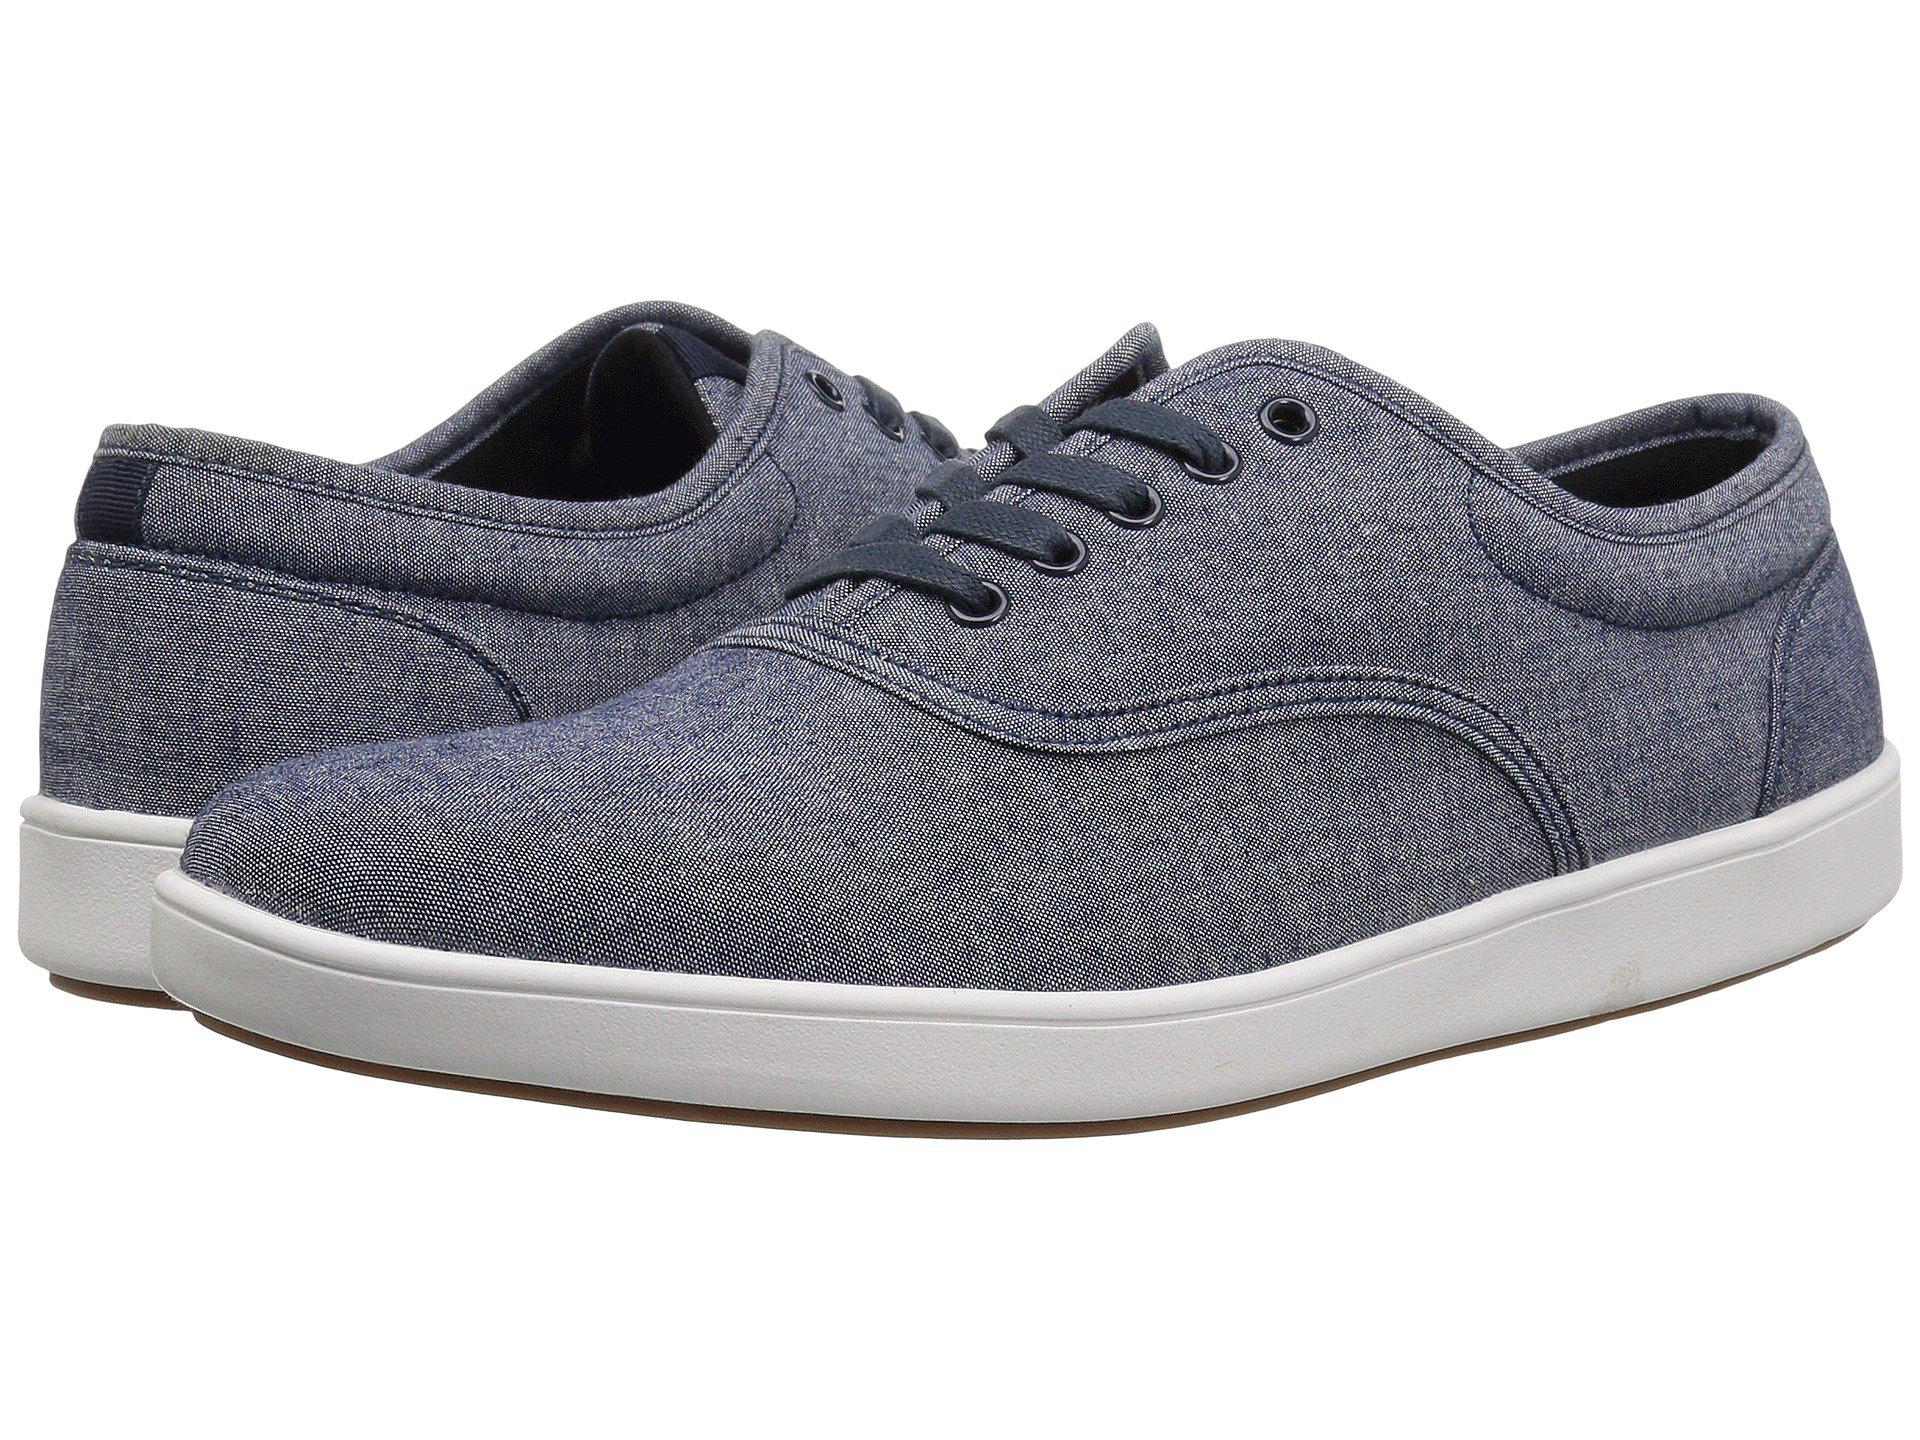 6a1ebaac931 Lyst - Steve Madden Franco (blue) Men s Lace Up Casual Shoes in Blue ...